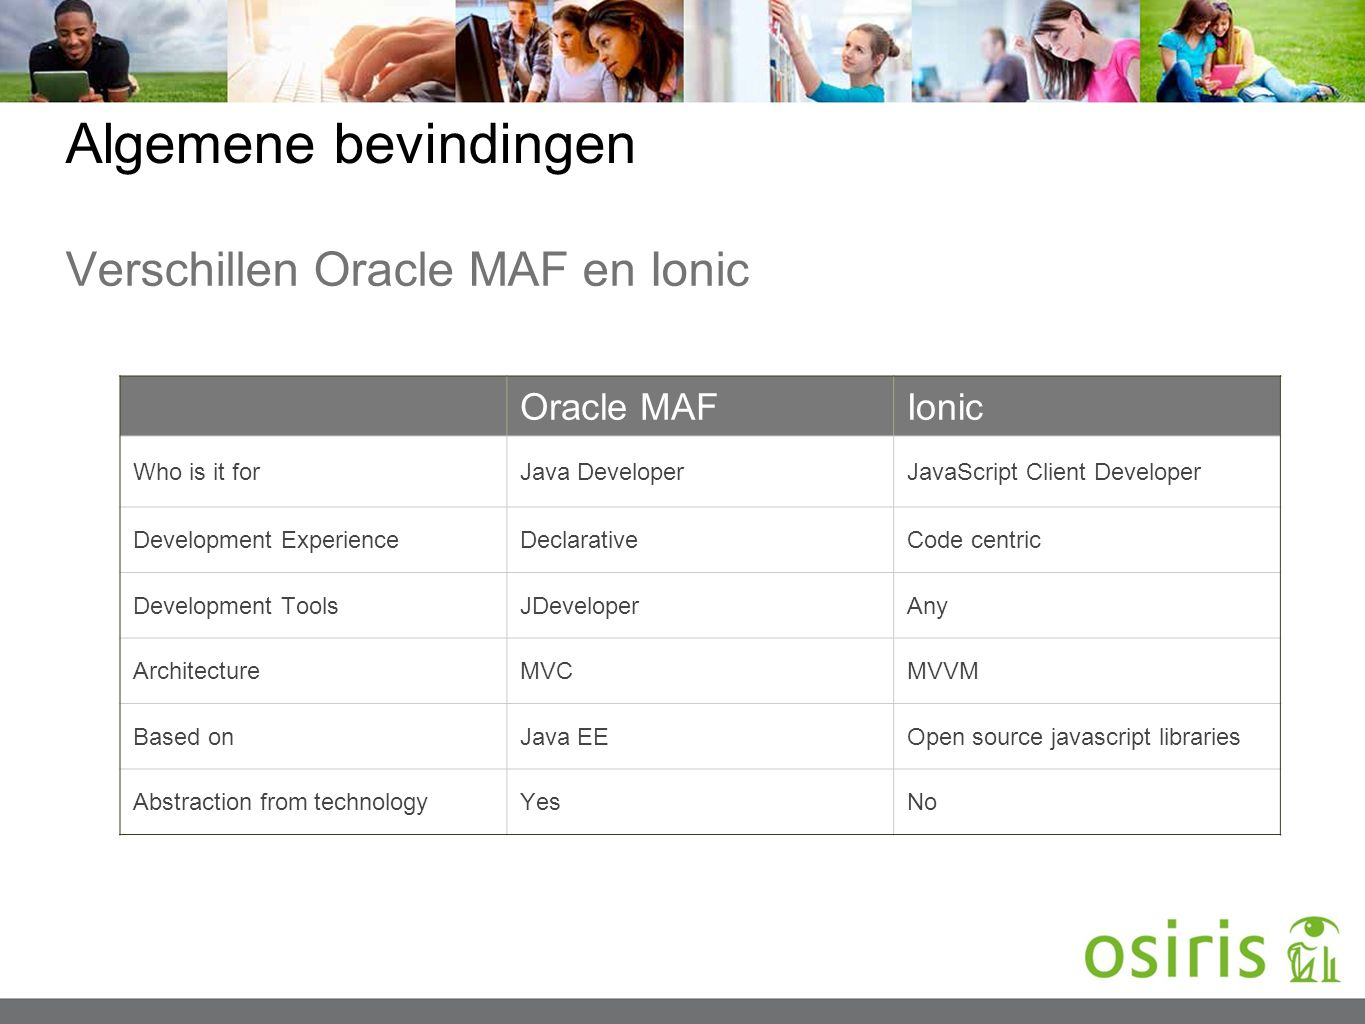 Algemene bevindingen Verschillen Oracle MAF en Ionic Oracle MAFIonic Who is it forJava DeveloperJavaScript Client Developer Development ExperienceDeclarativeCode centric Development ToolsJDeveloperAny ArchitectureMVCMVVM Based onJava EEOpen source javascript libraries Abstraction from technologyYesNo